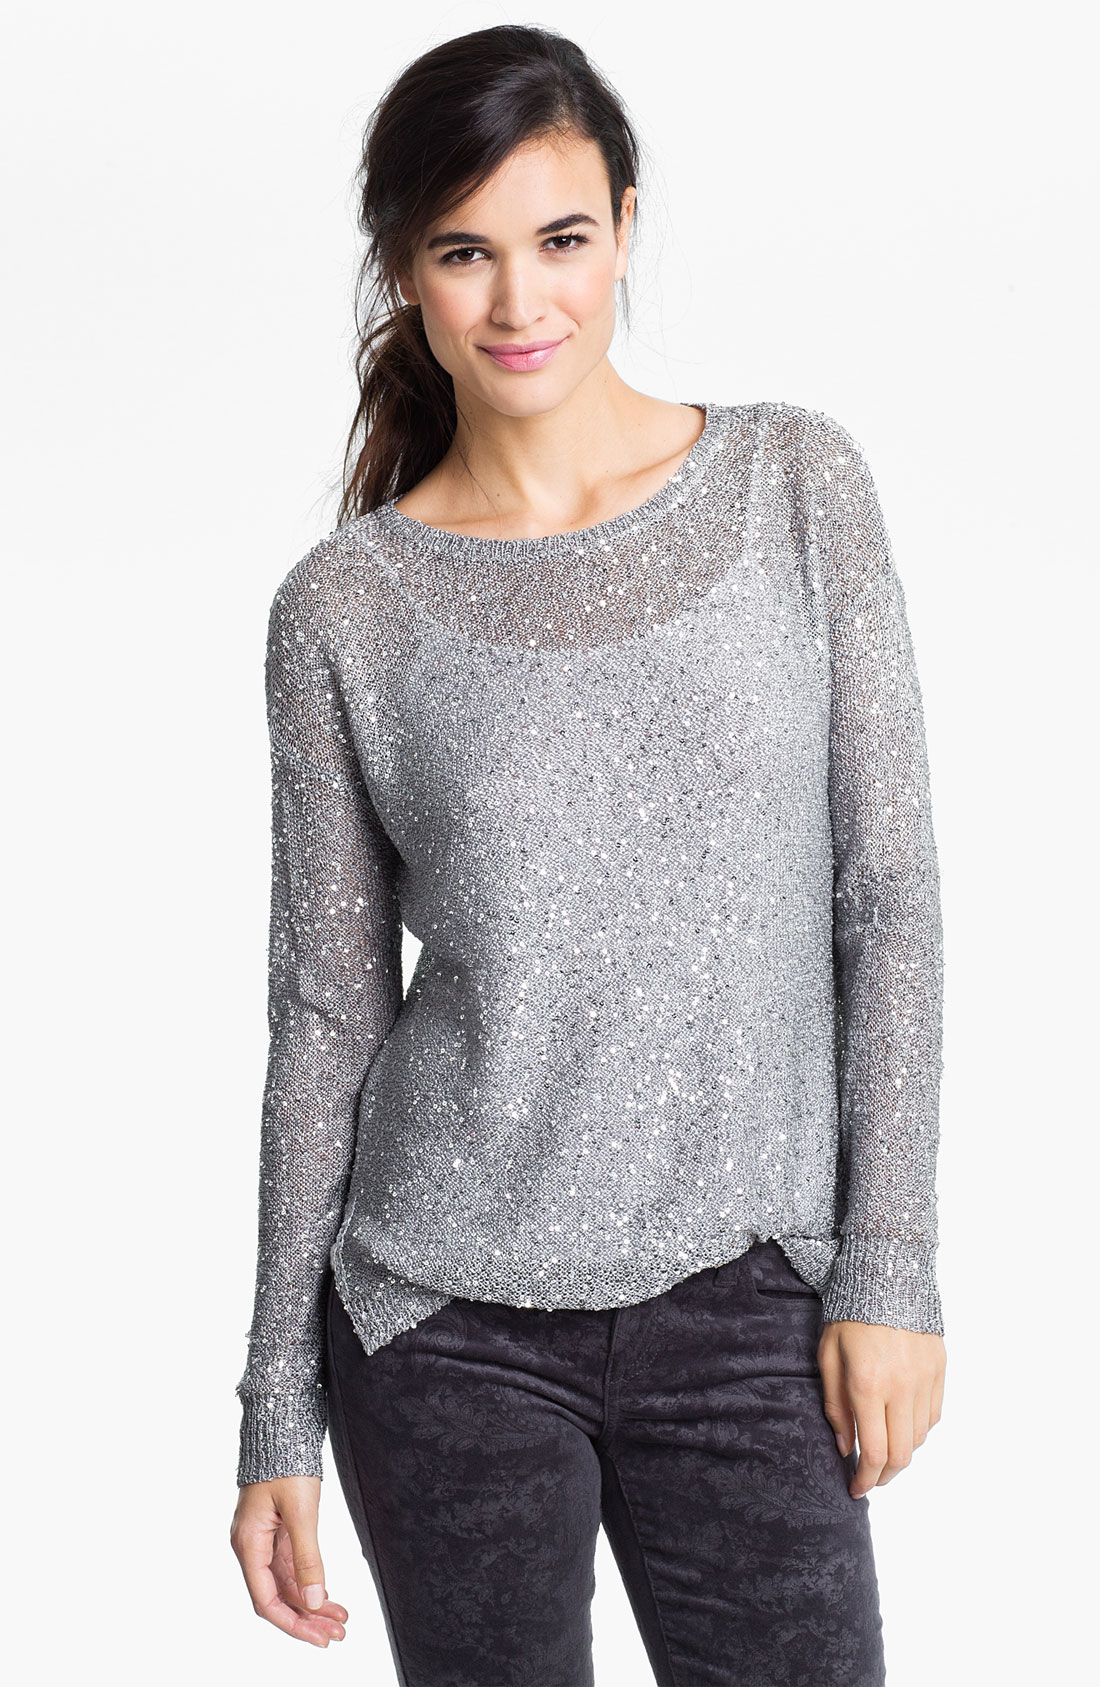 Little Big Girls Long Sleeve Sweater Cardigan Sequin Knit Shrug Outerwear $ 16 Hello Kitty. Girls' Sweater Fleece Active Set with Sequins and Glitter Print. from $ 13 07 Prime. out of 5 stars 9. Moss Rose. Women's Pullover Wrap Poncho with Sequins and Tassels $ .